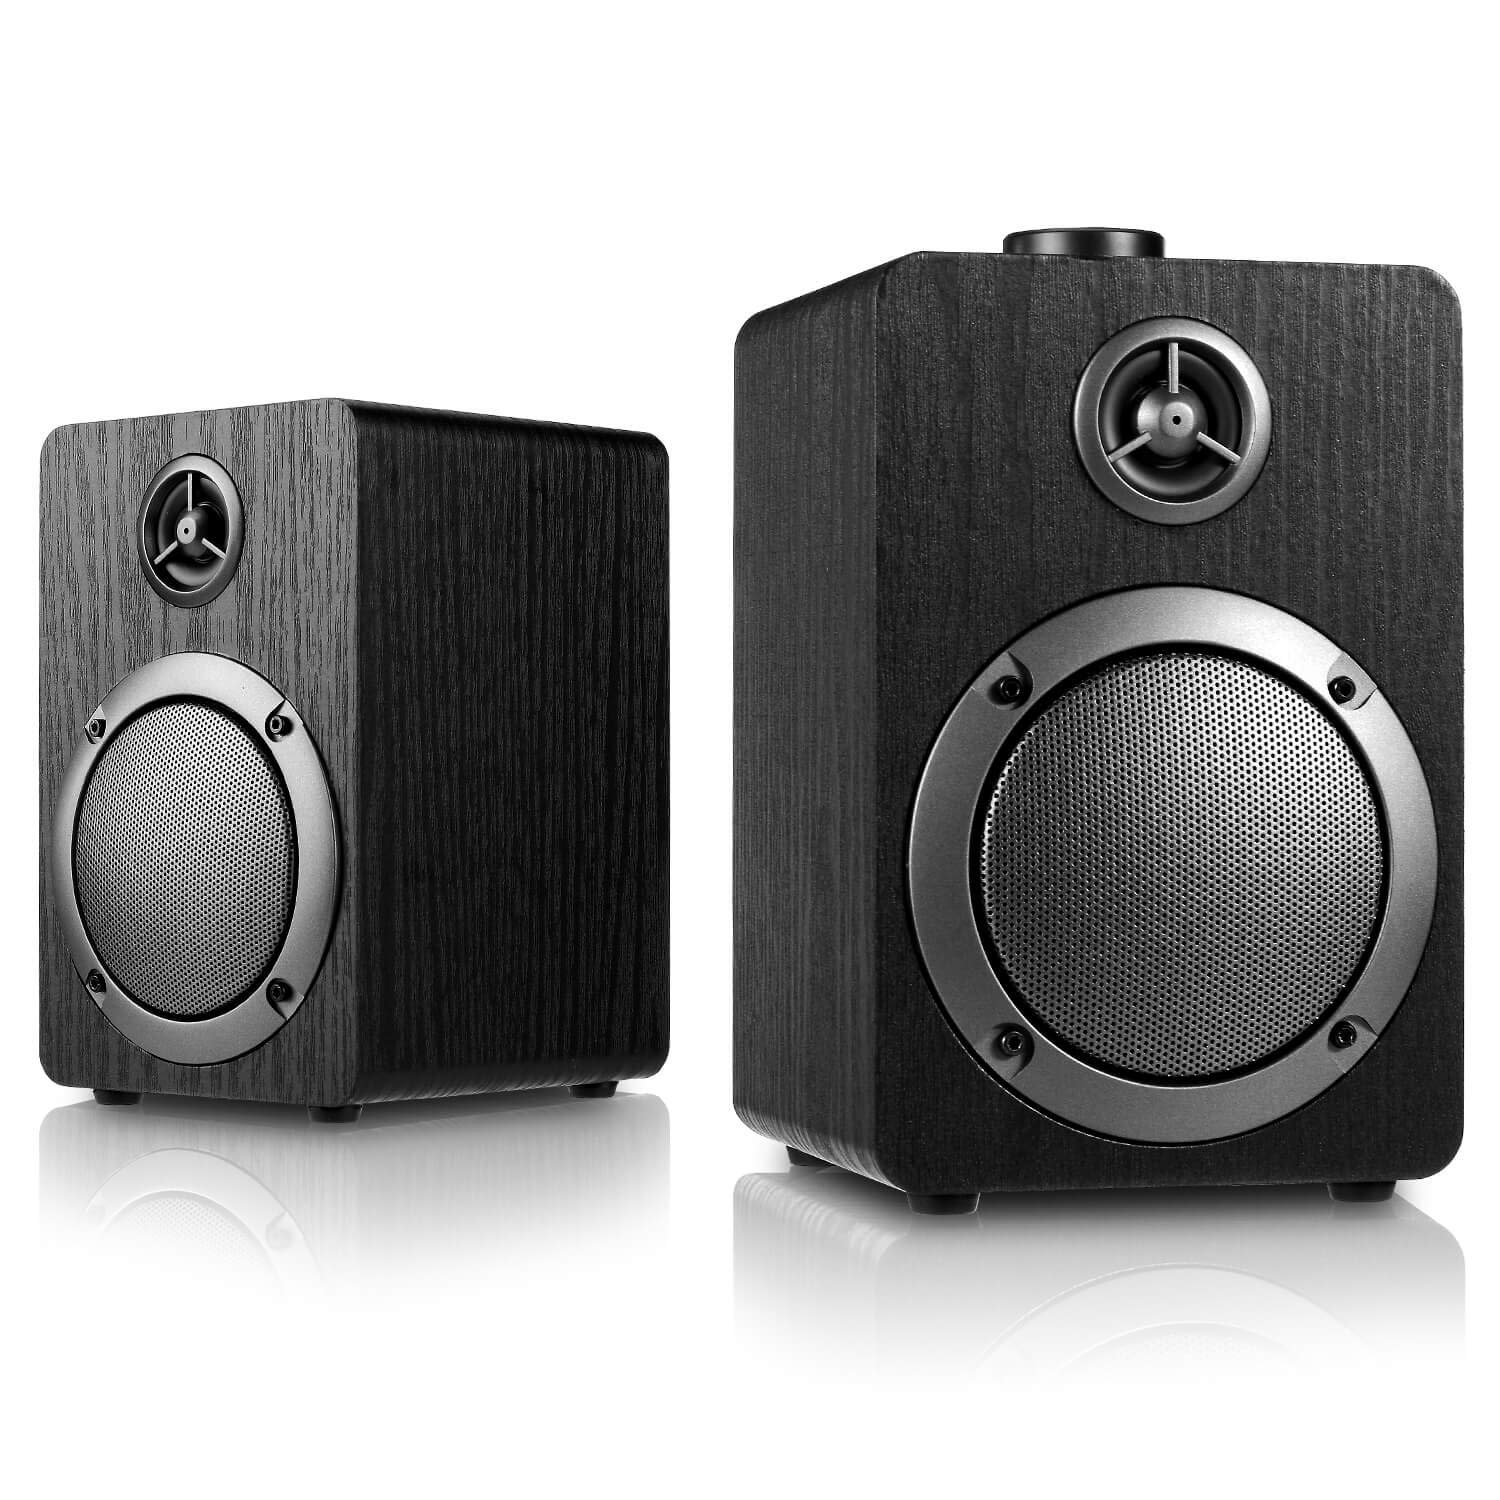 USB-Powered PC Computer Speakers Mica PB20 with 2.0CH Surround Sound, Wooden Wired LED Volume Control Mini Speaker for Multiple Devices with 3.5mm AUX PC Input Black